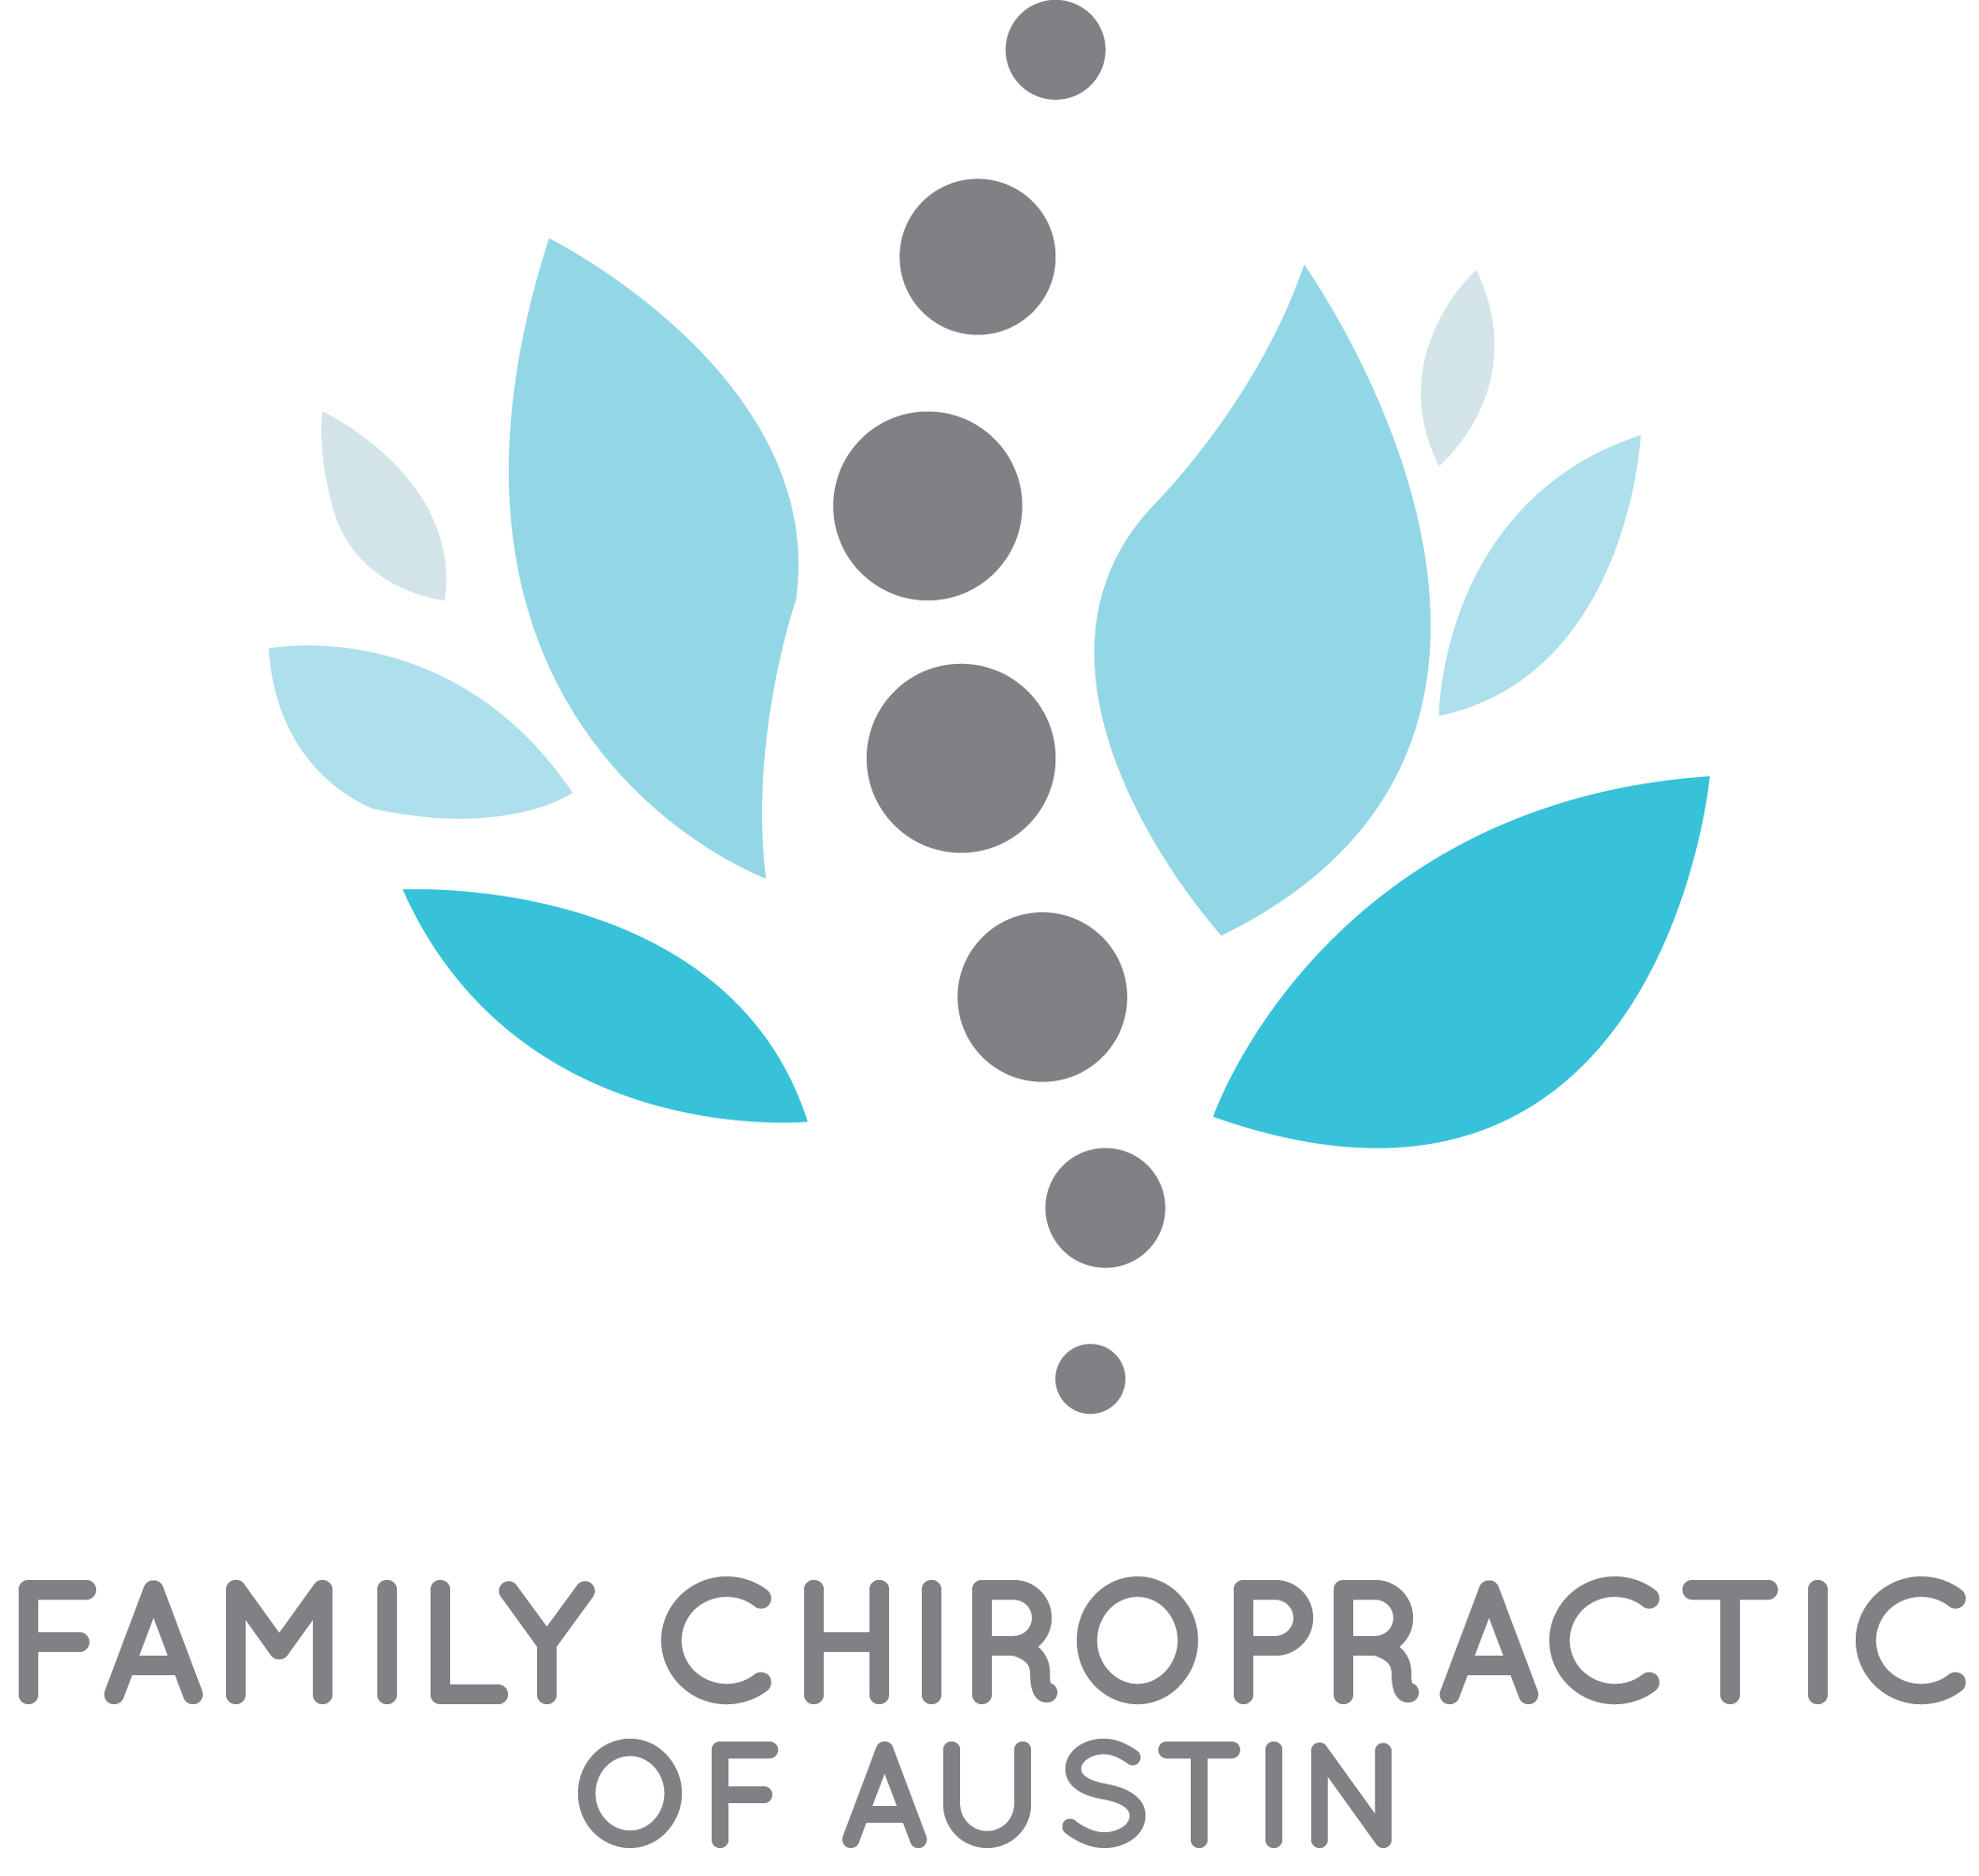 Family Chiropractic of Austin